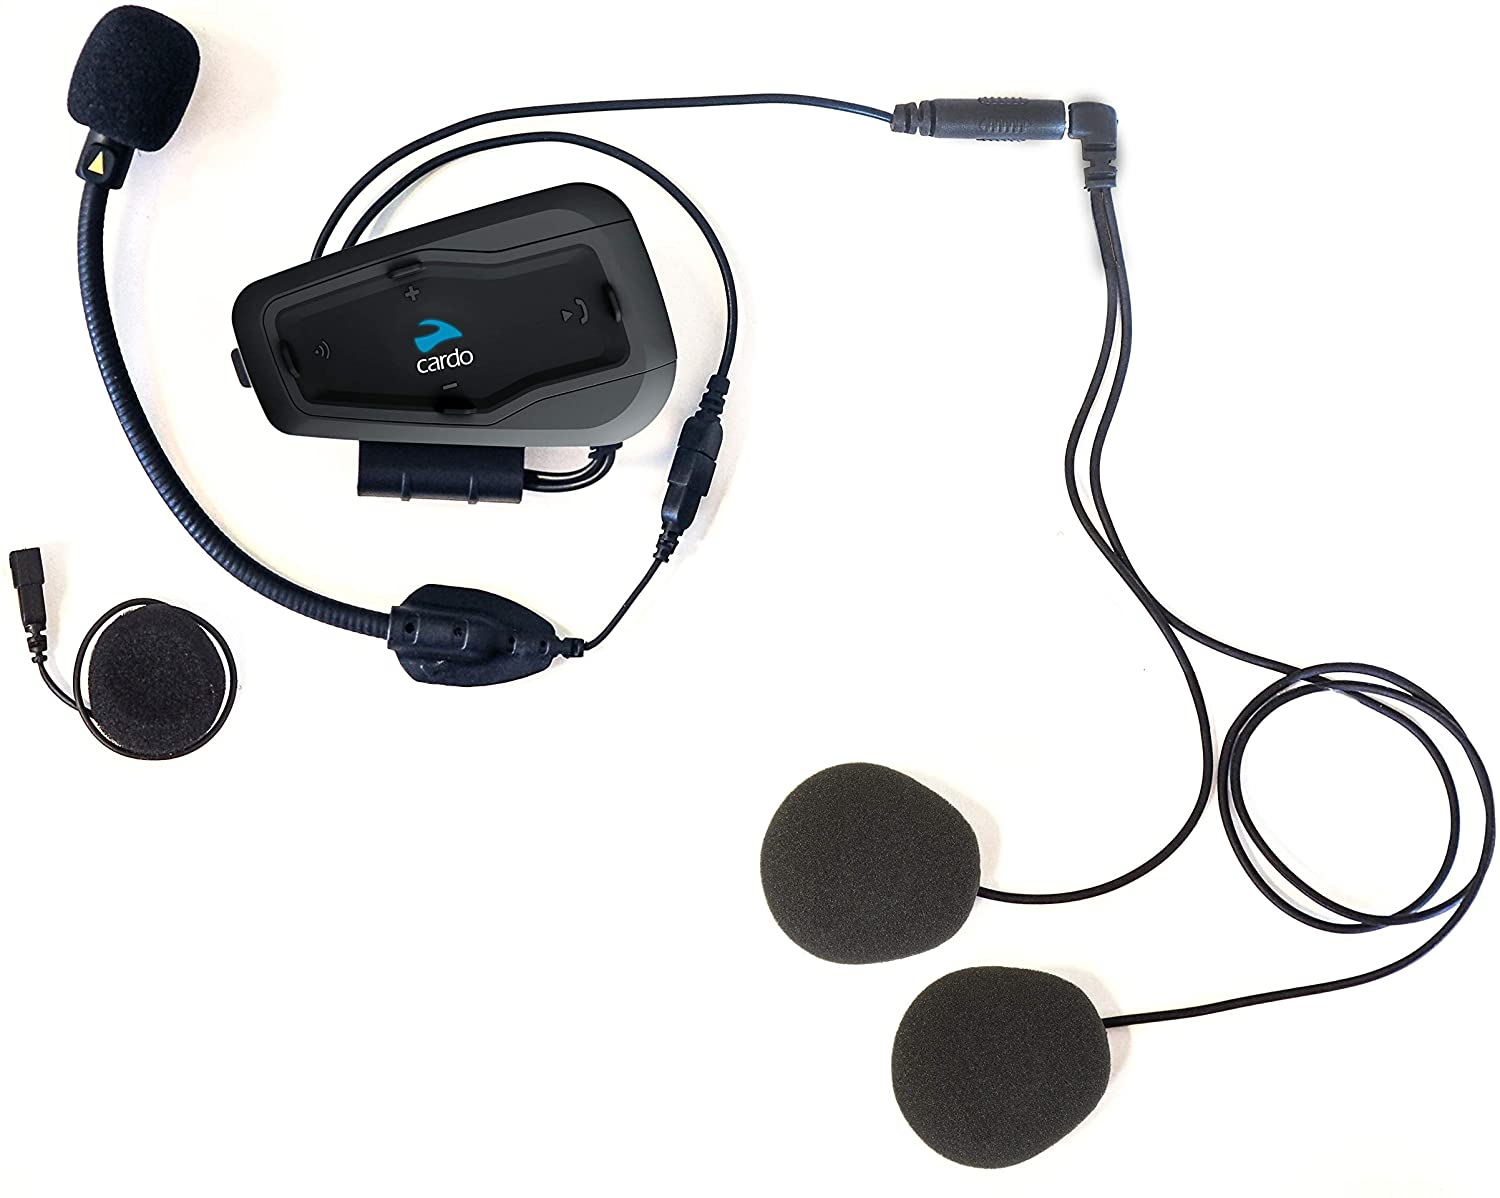 Review of Cardo FREECOM 1 PLUS-Motorcycle 2-Way Bluetooth Communication System